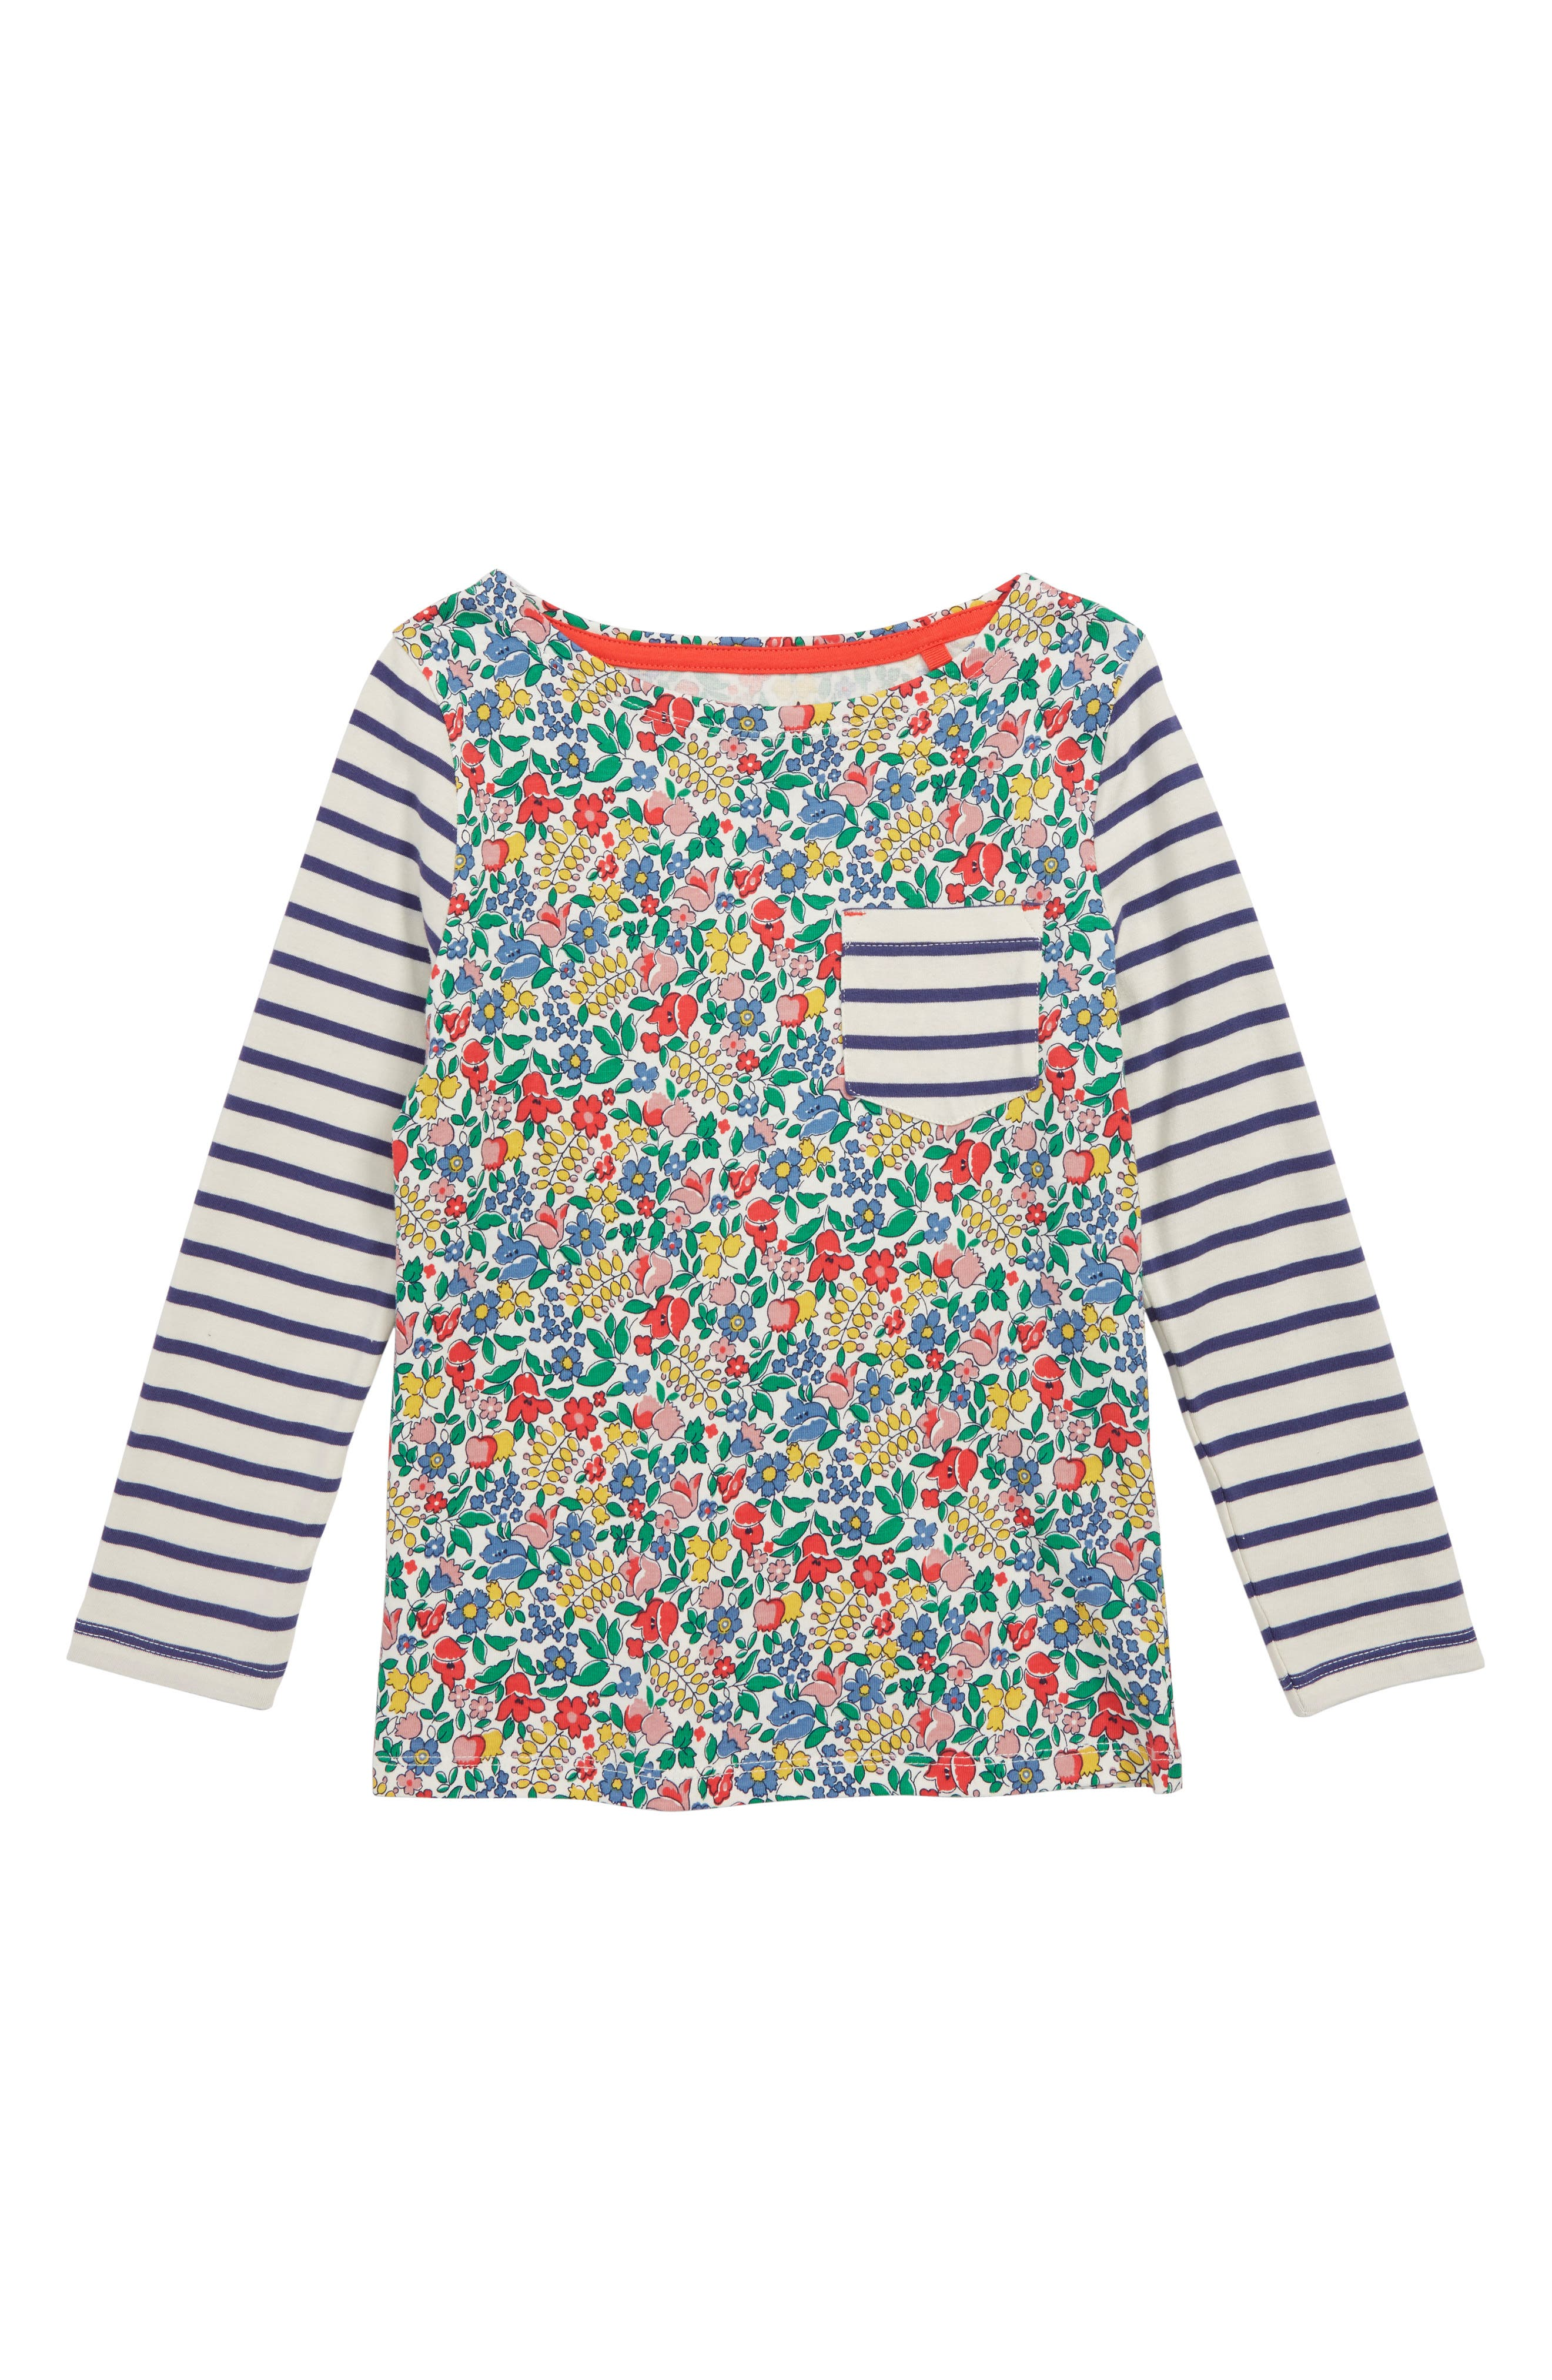 Hotchpotch T-Shirt,                             Main thumbnail 1, color,                             MULTI FLOWERBED